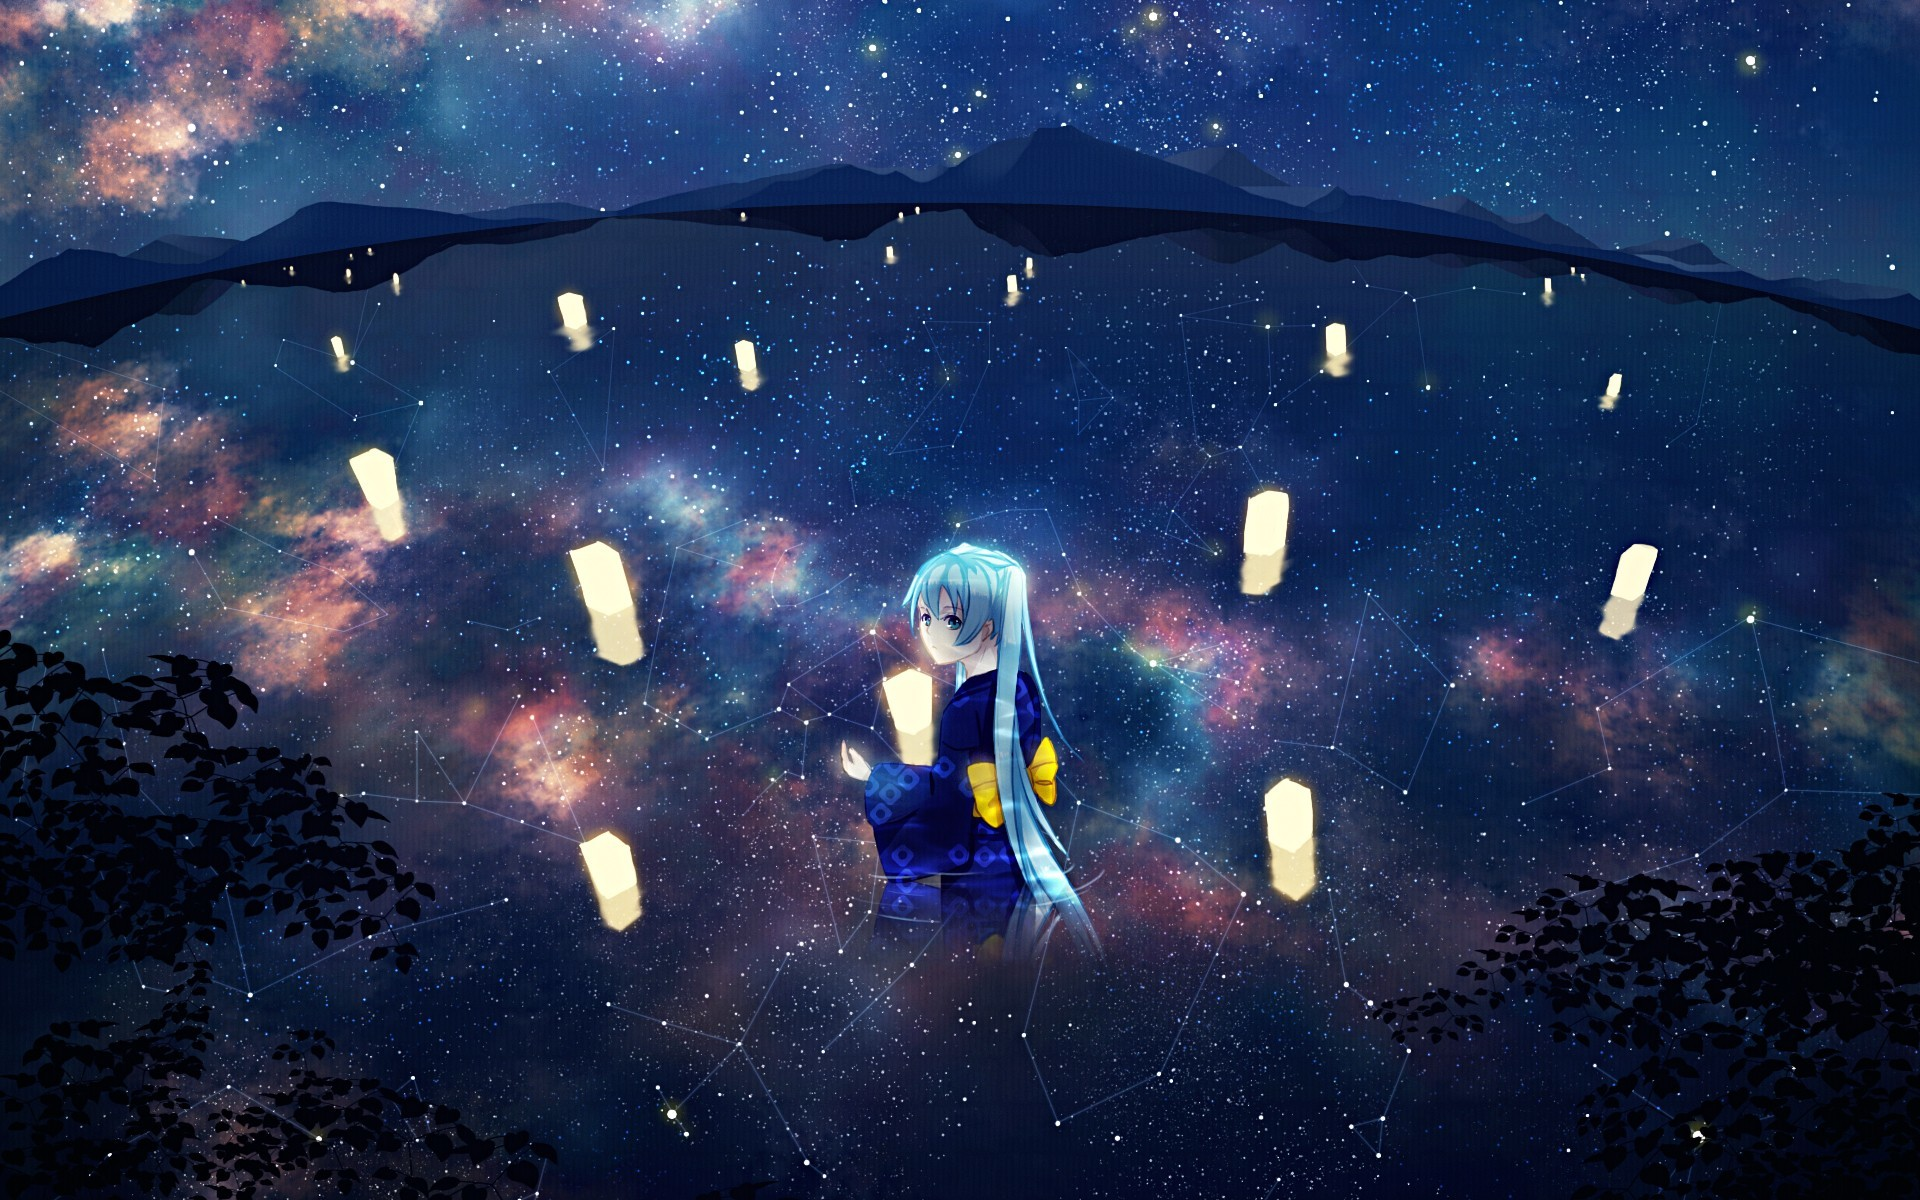 water Landscapes vocaloid night HD Wallpaper